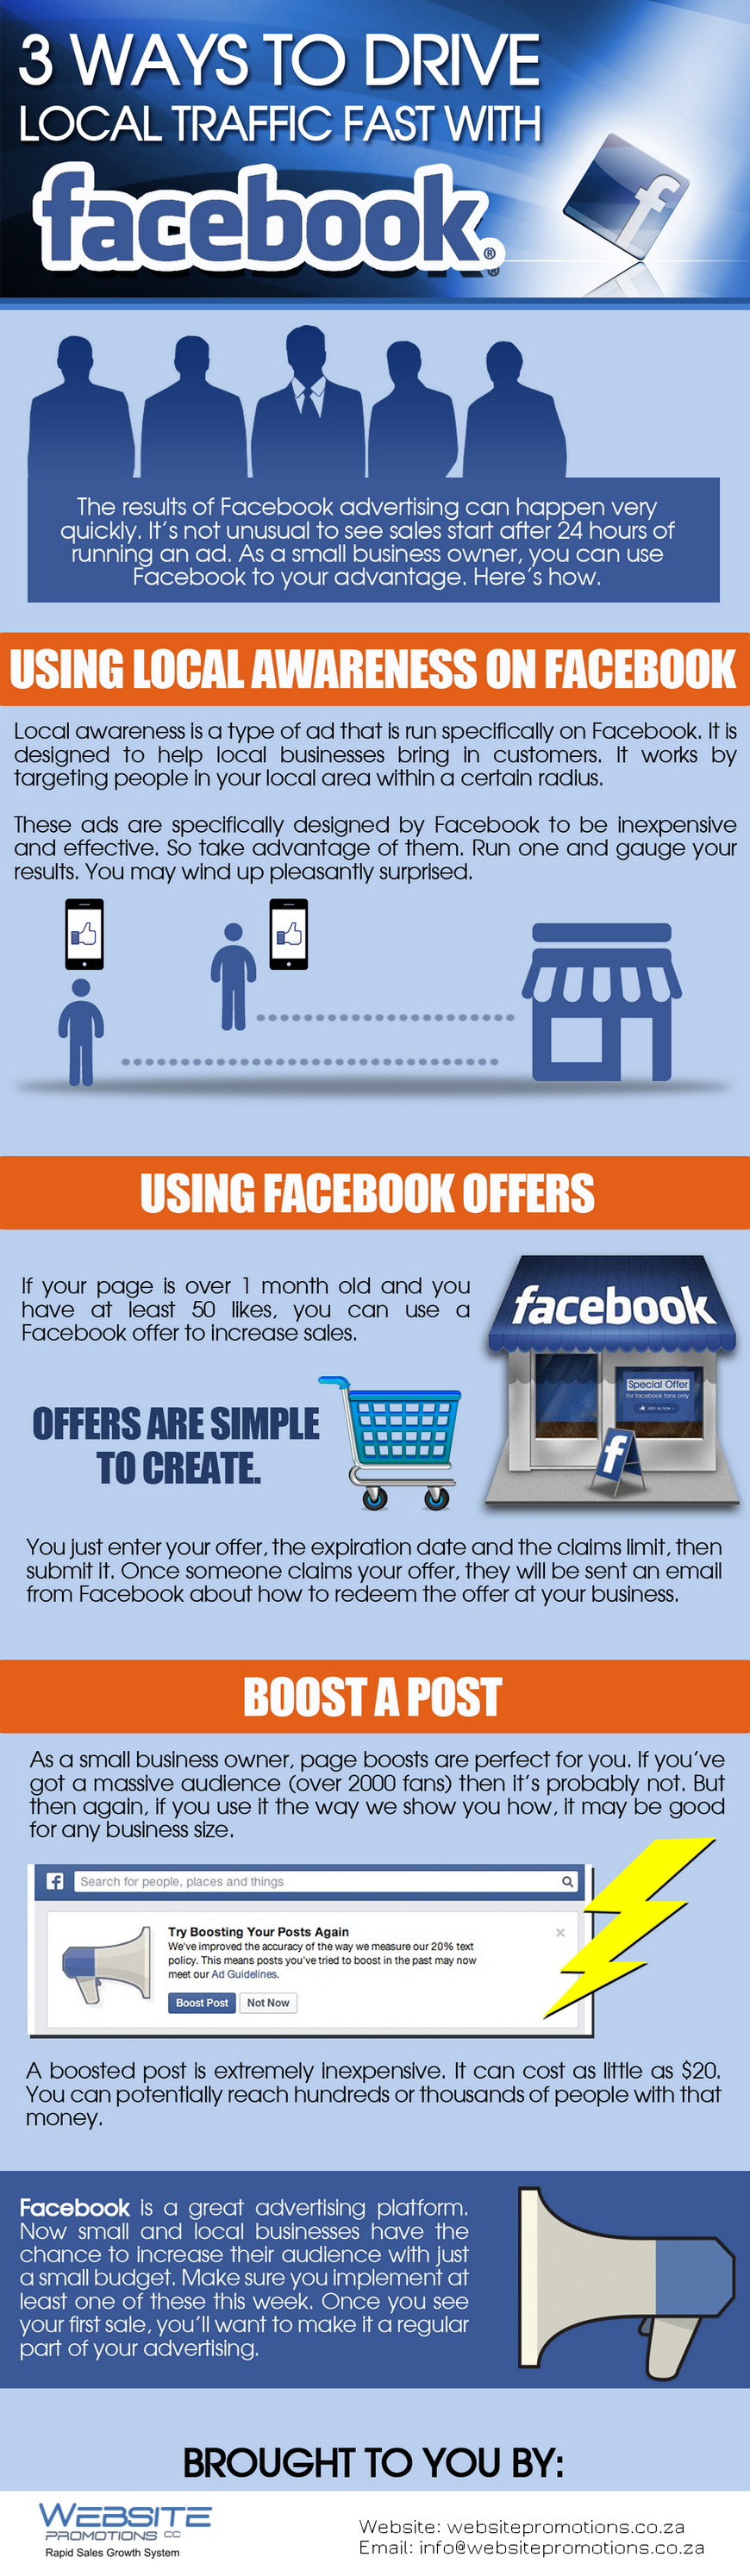 3 Ways to Drive Local Traffic Fast with Facebook